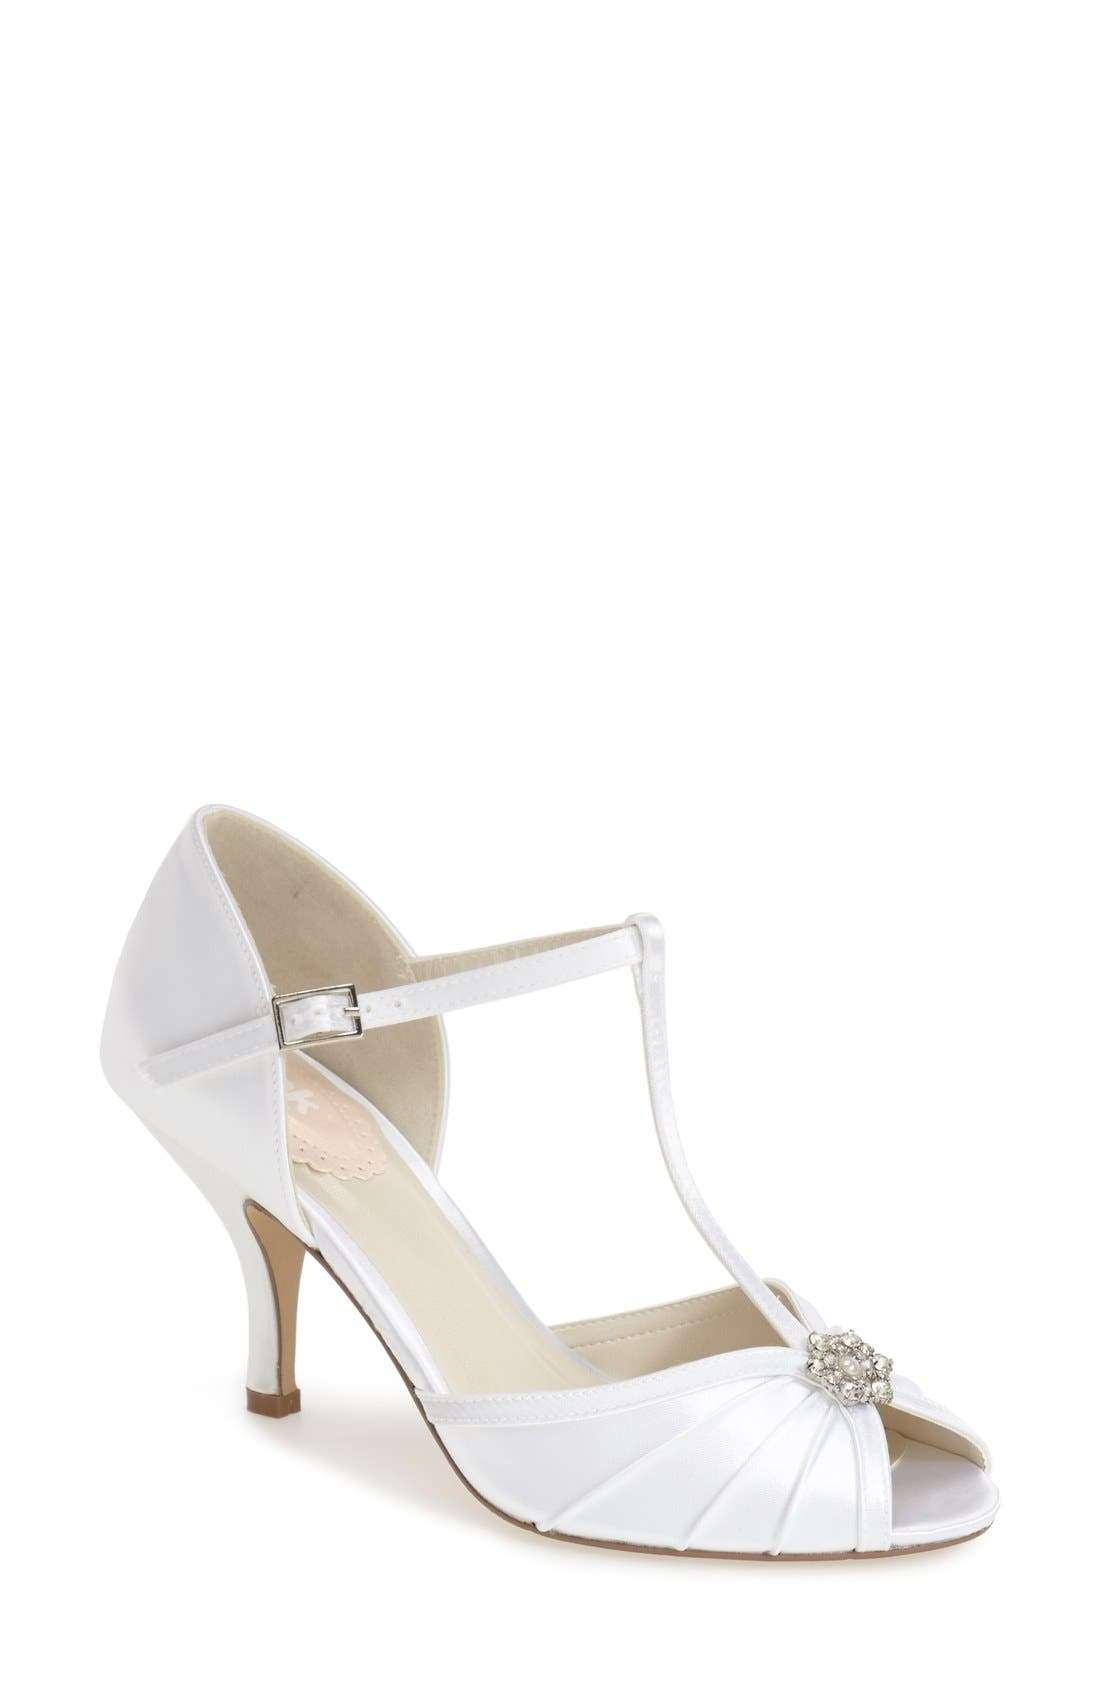 Alternate Image 1 Selected - pink paradox london 'Perfume' T-Strap Peep Toe Pump (Women)